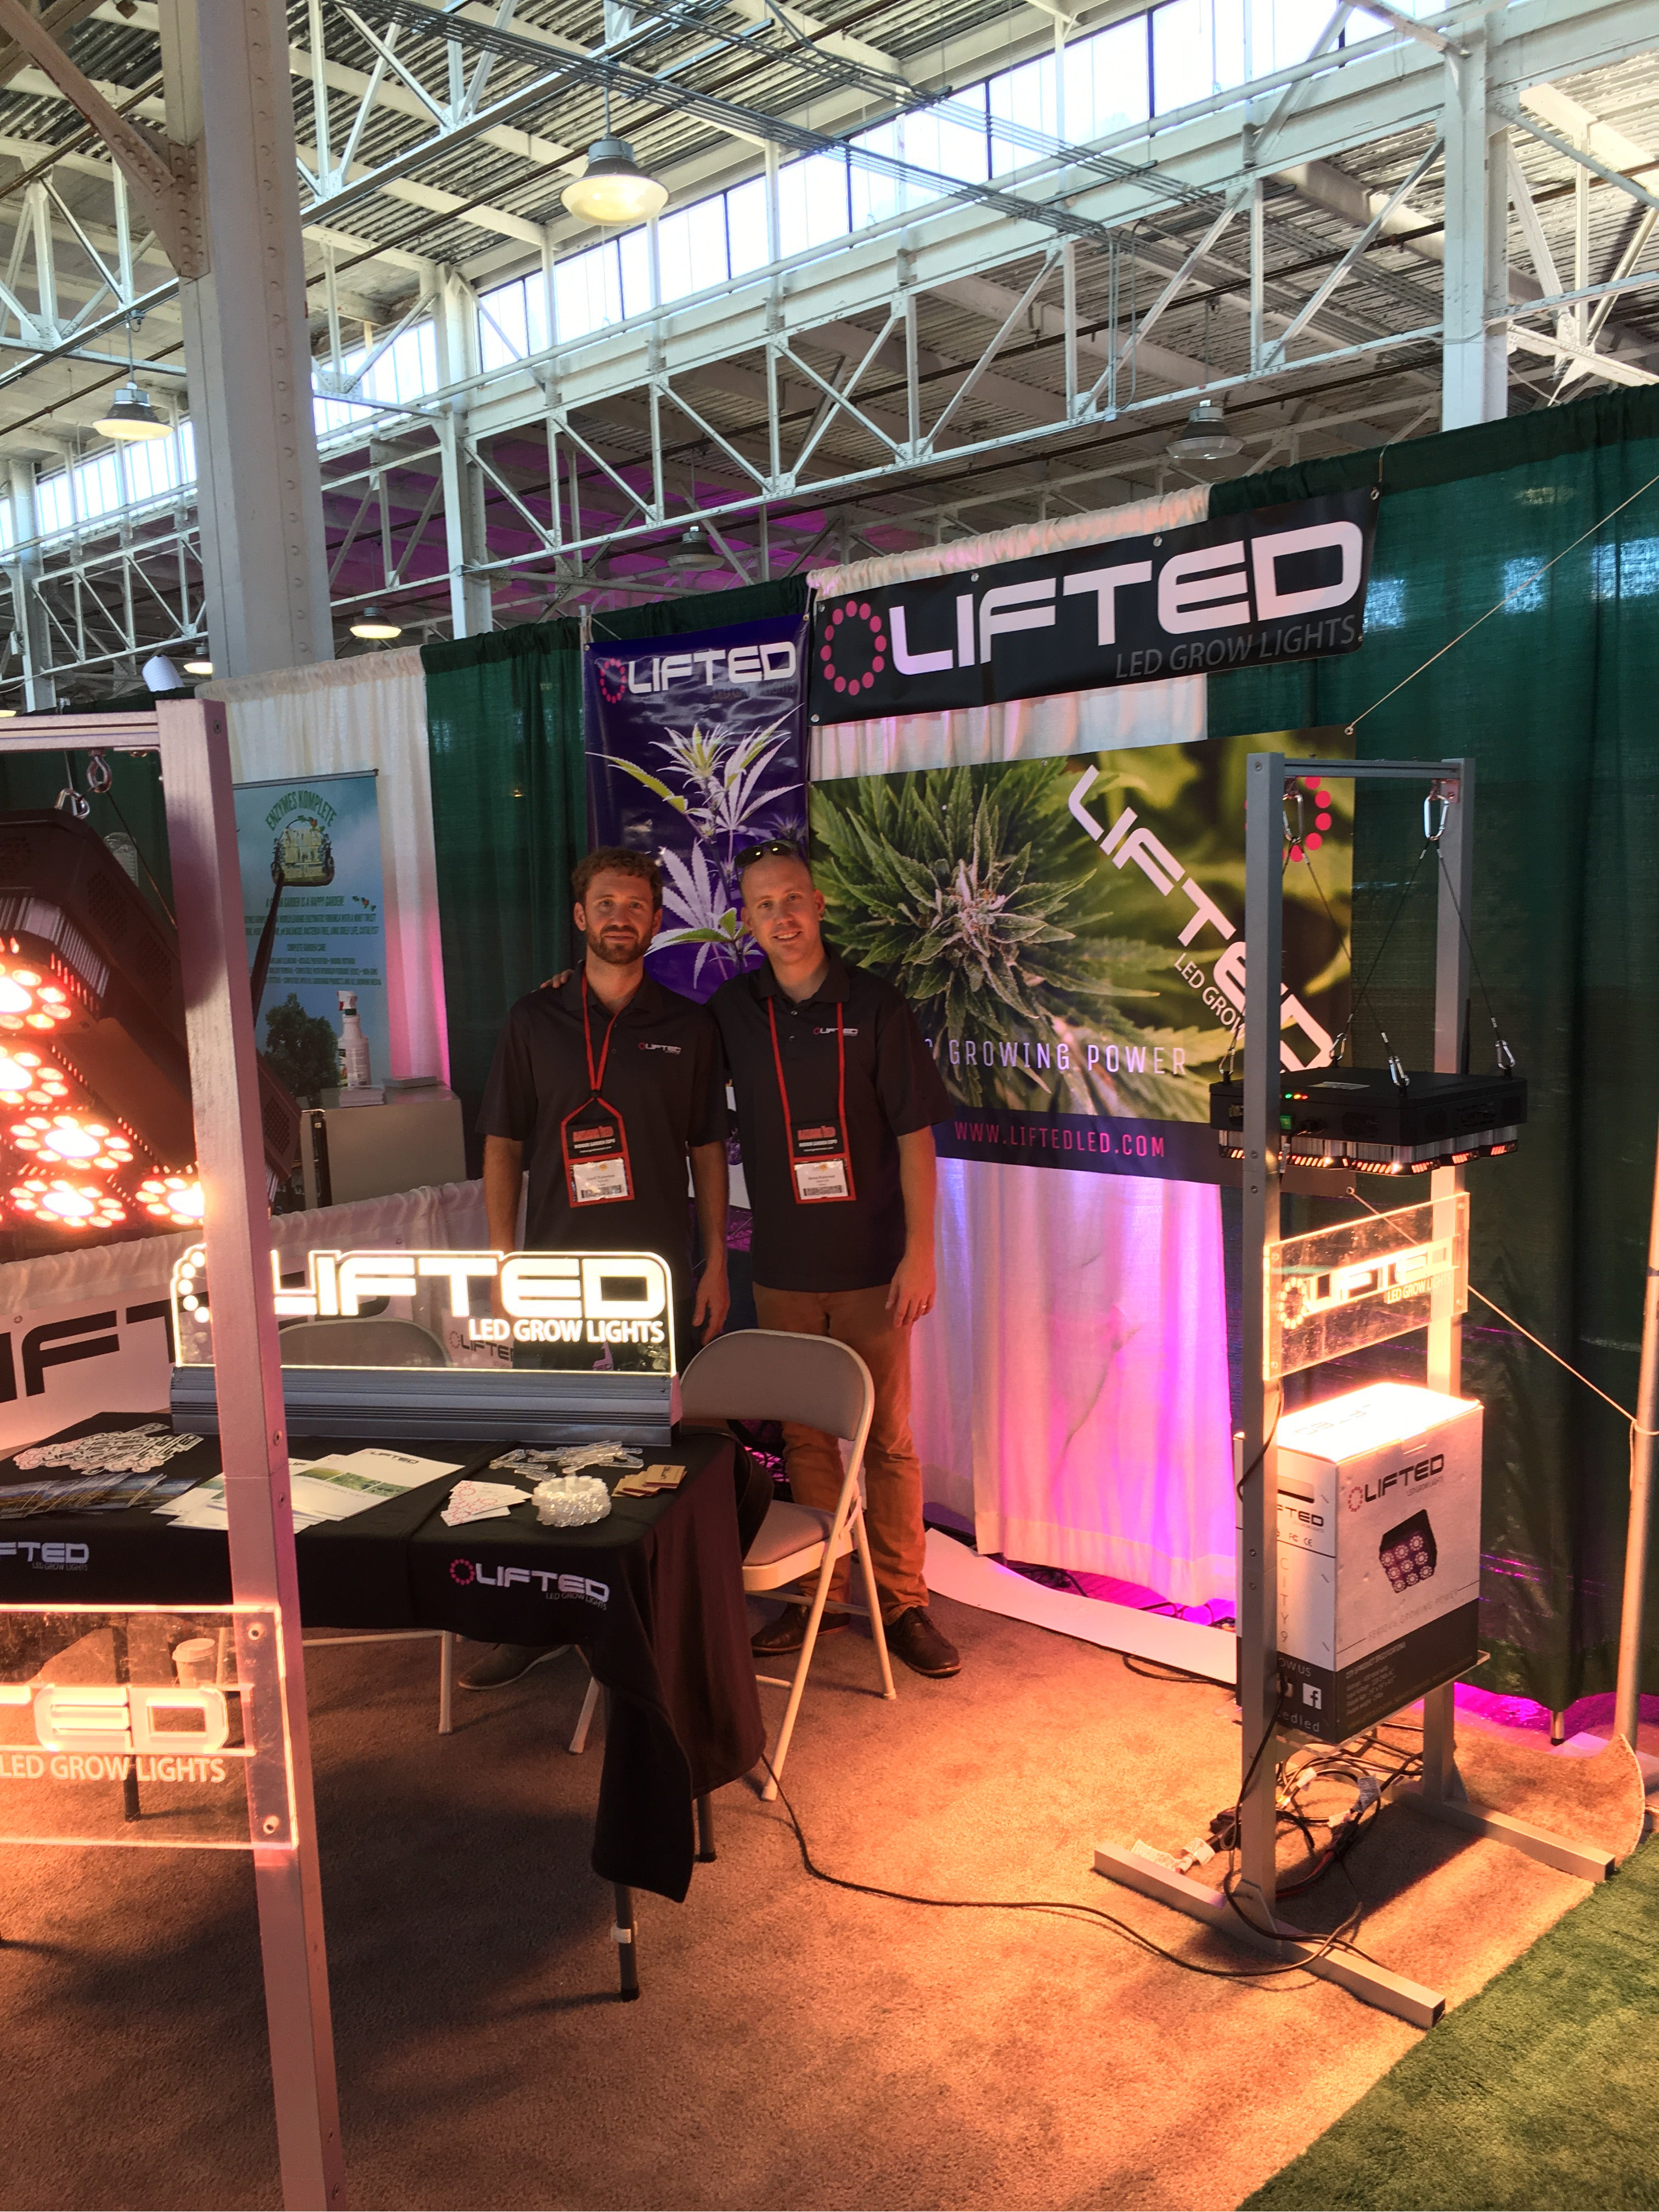 Jaxon and Geoff manning the Lifted LED booth at High Times